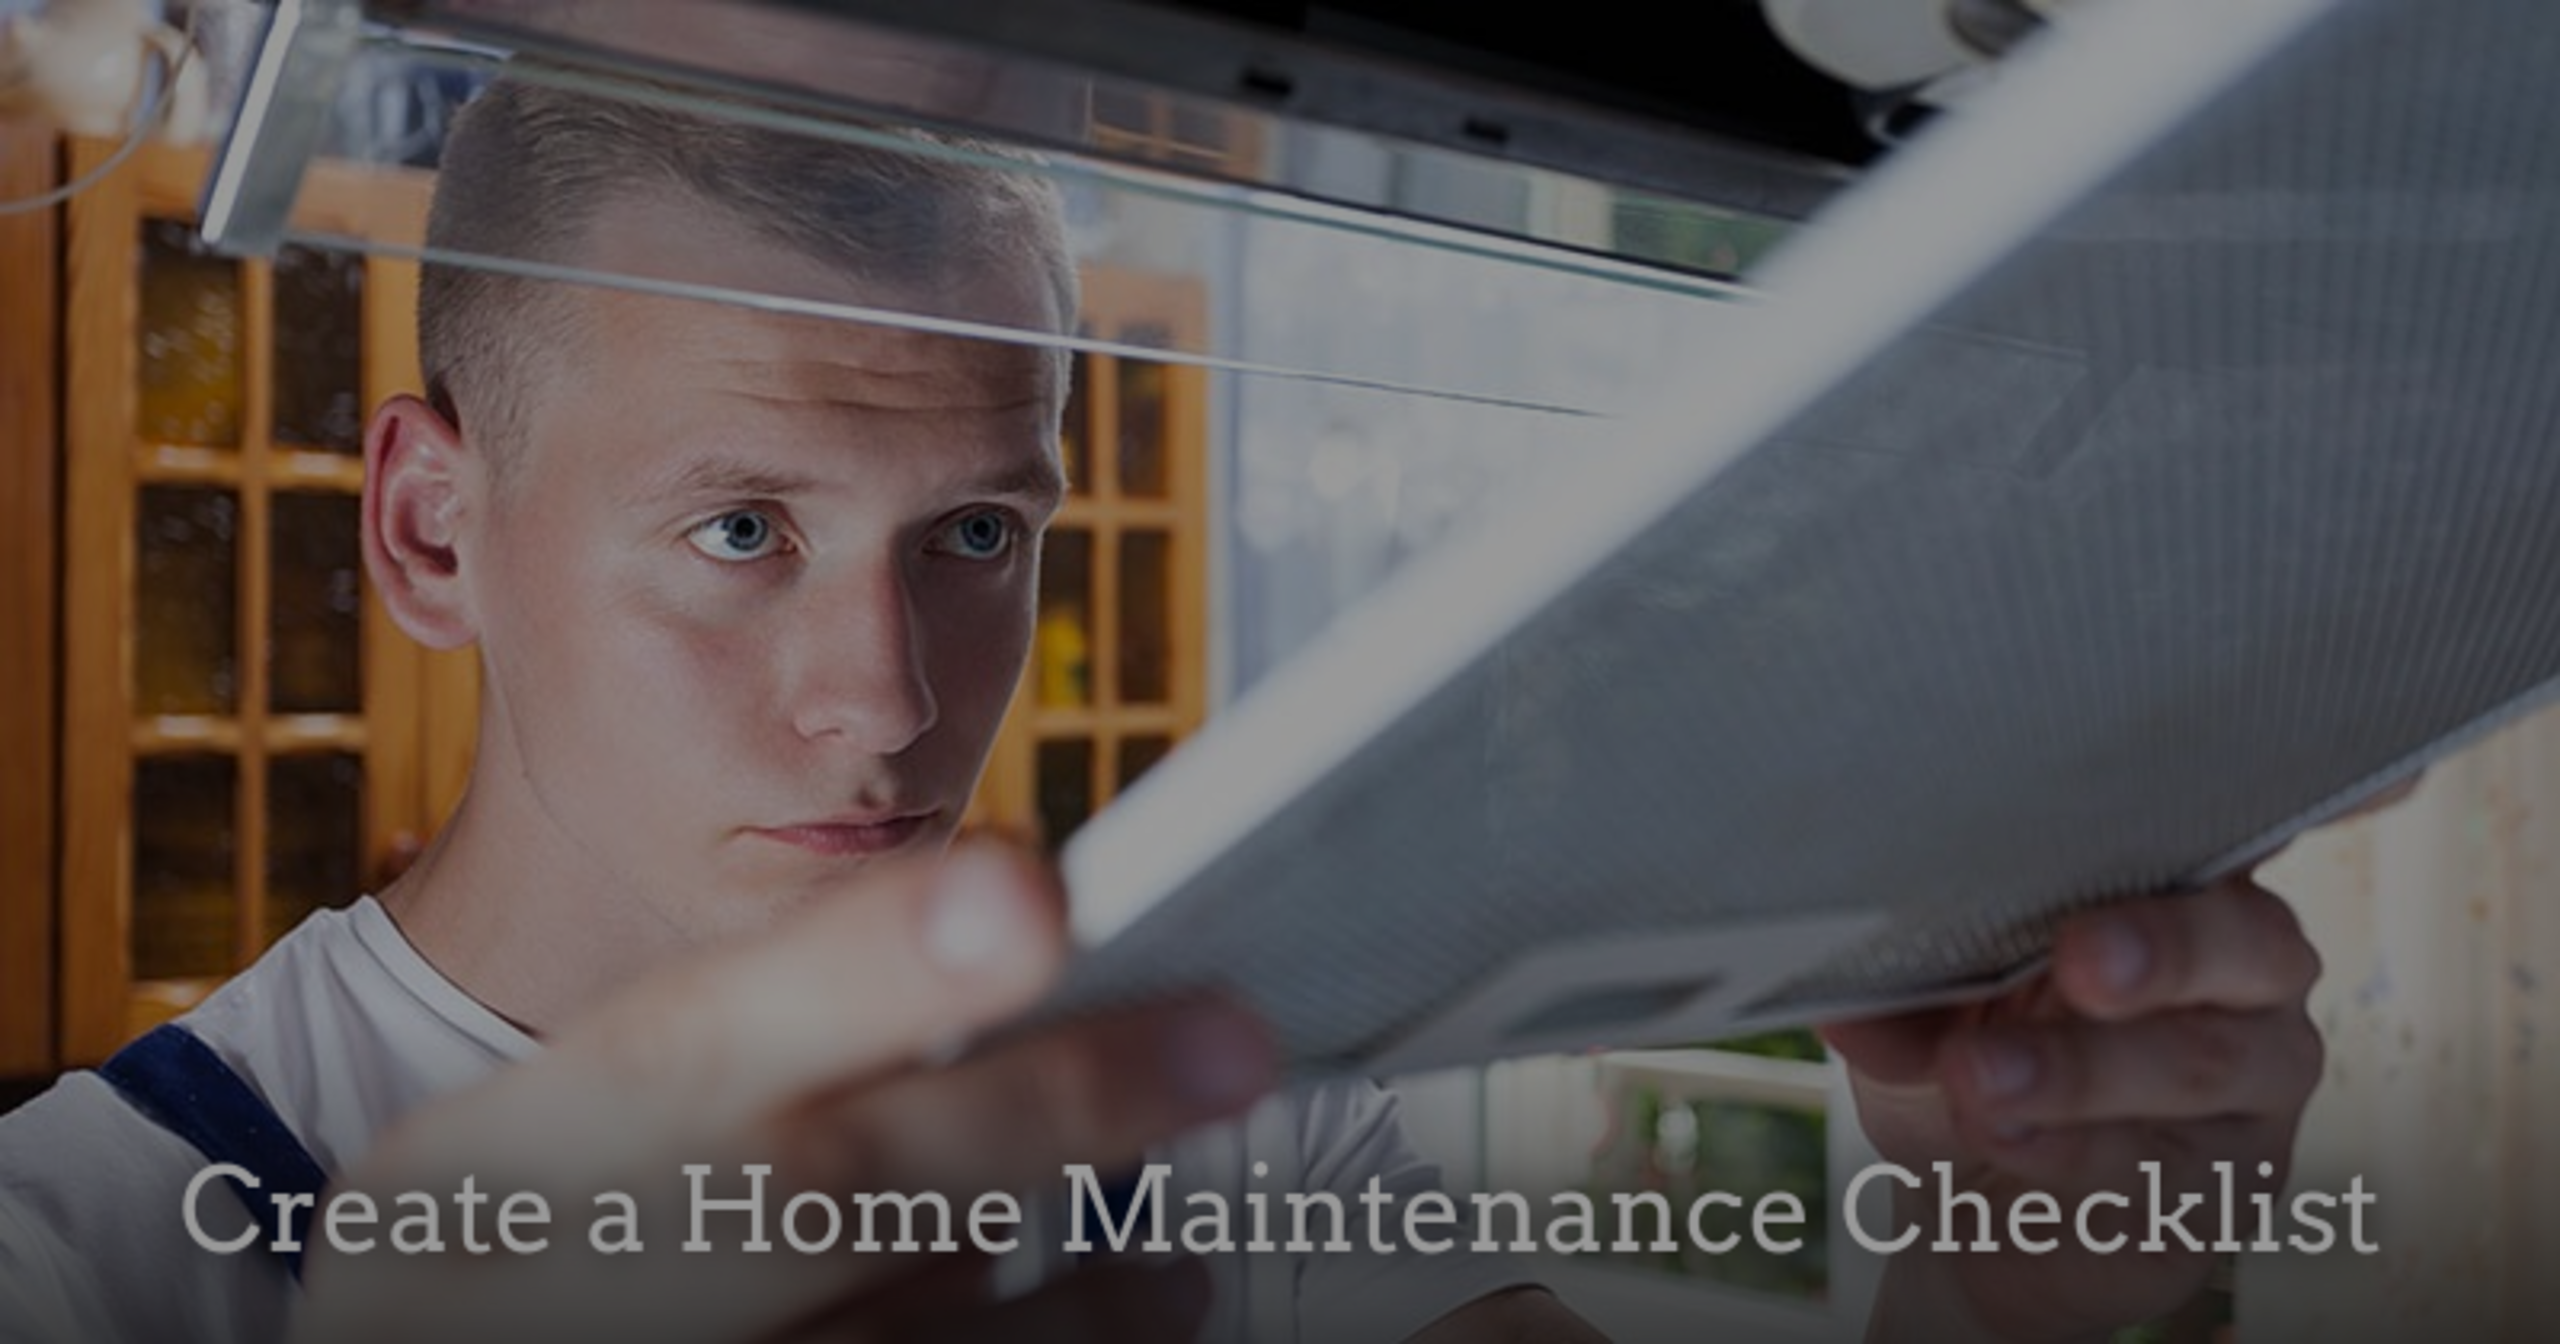 Create a Home Maintenance Checklist